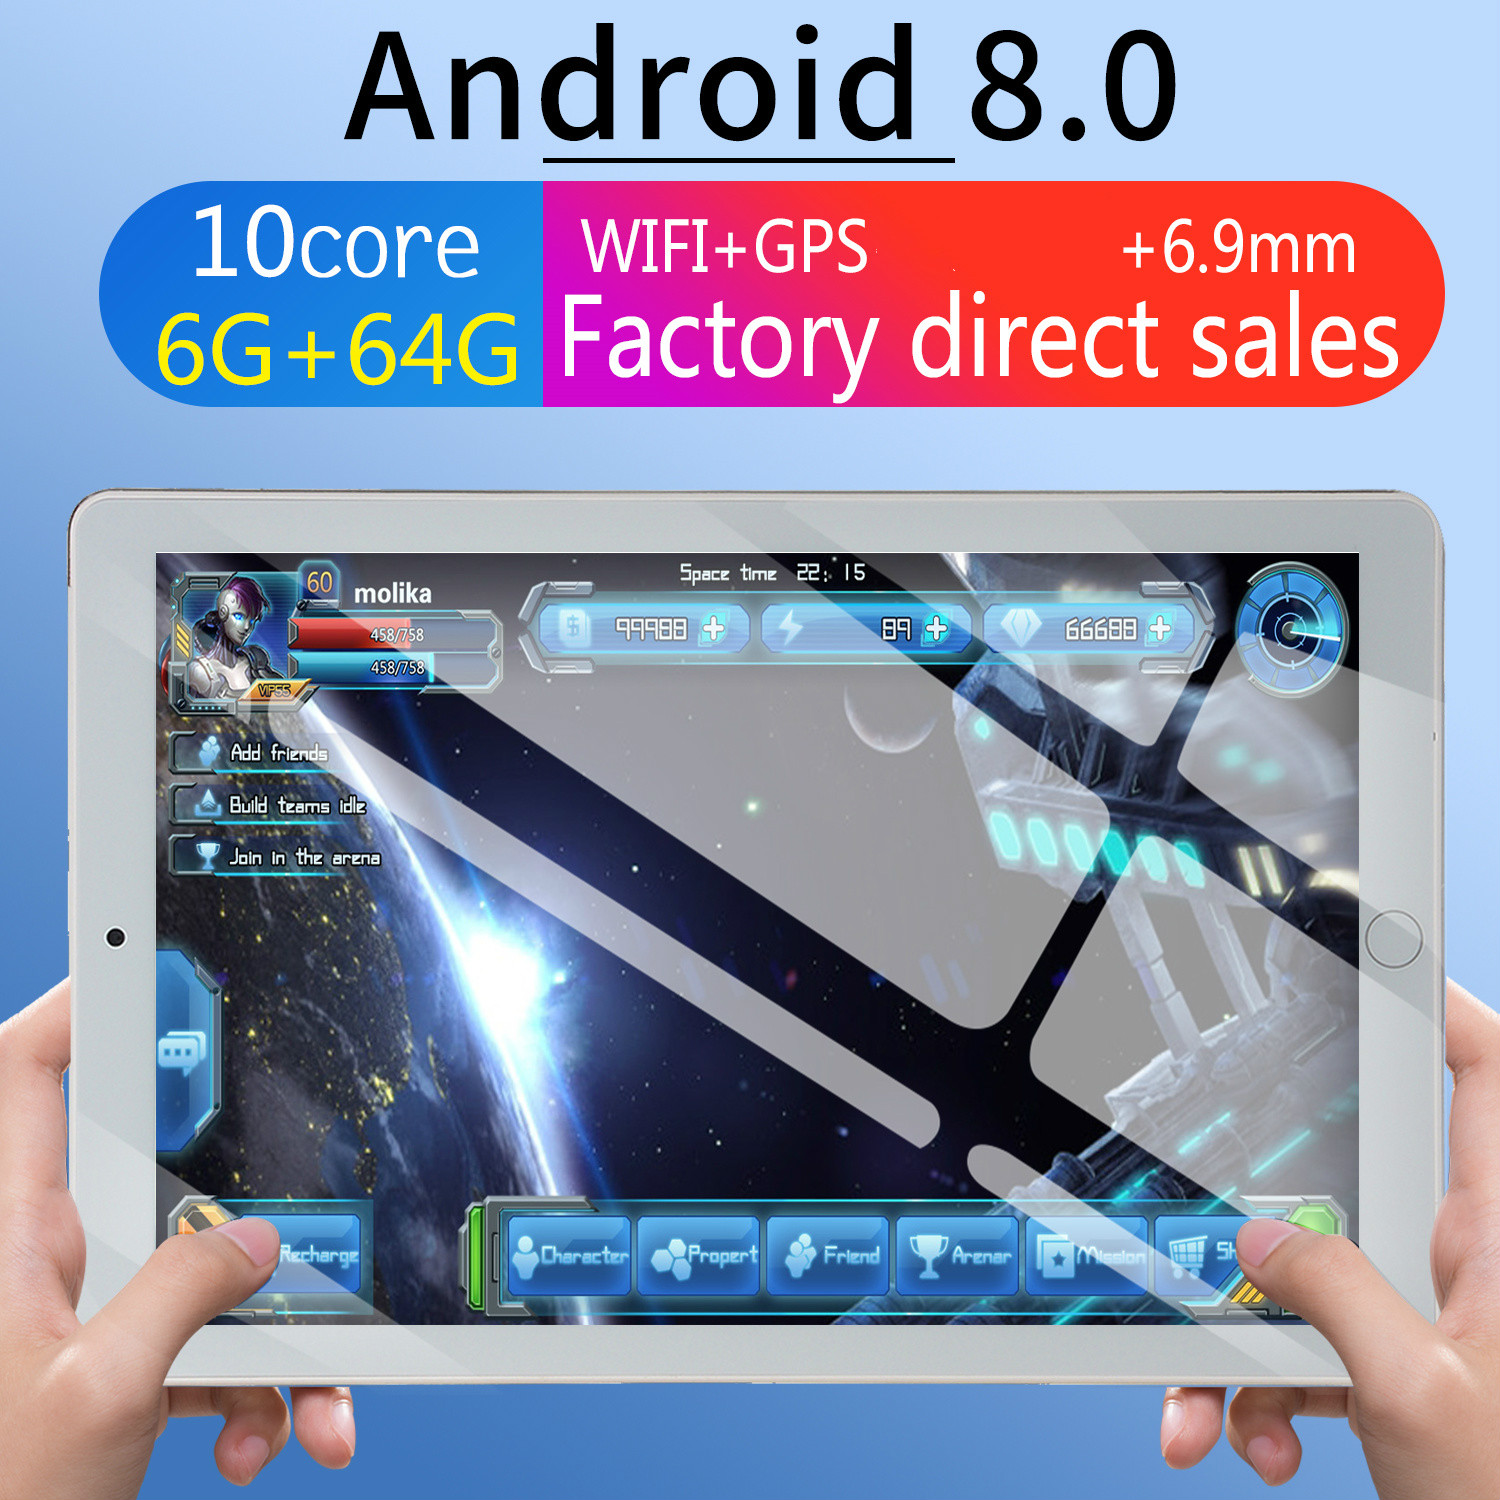 2020 10 Tablet Screen Mutlti Touch Android 8.0 Octa Core Ram 6GB ROM 64GB Camera 5MP Wifi 10 Inch Tablet 4G LTE Pro Pc